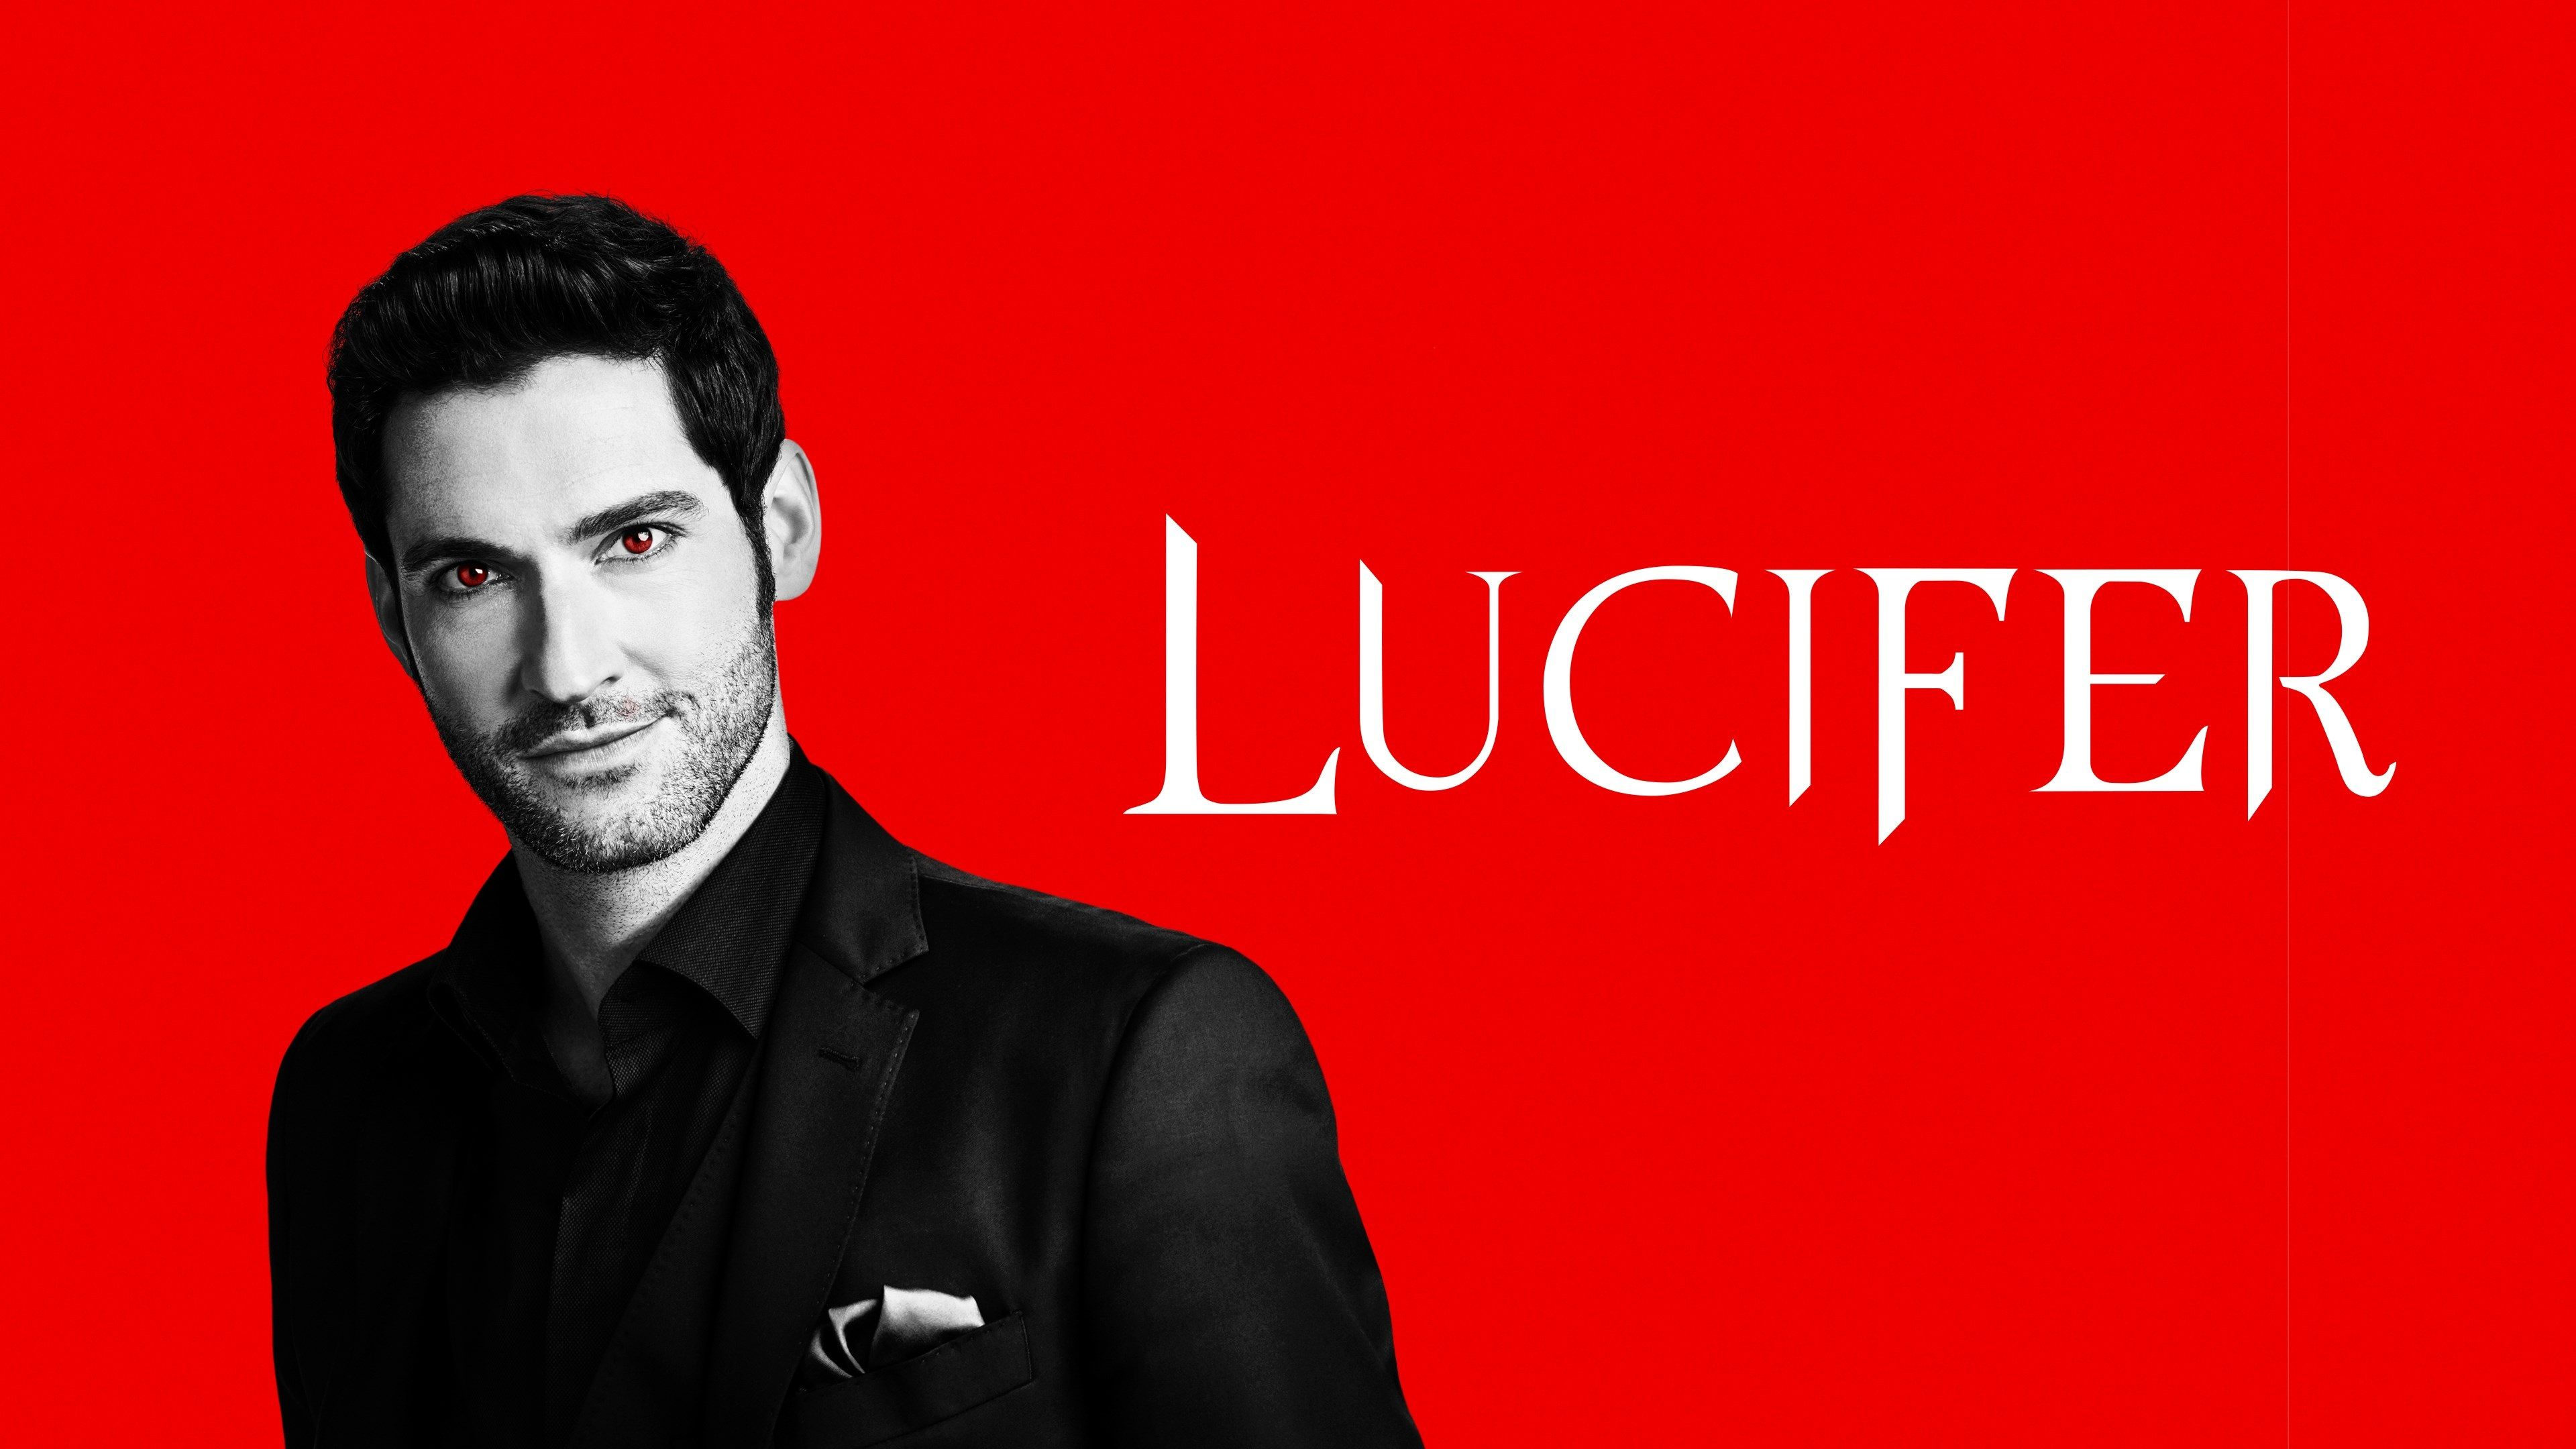 3840x2160 Lucifer 4k New Wallpaper In Hd Lucifer Tom Ellis Episode